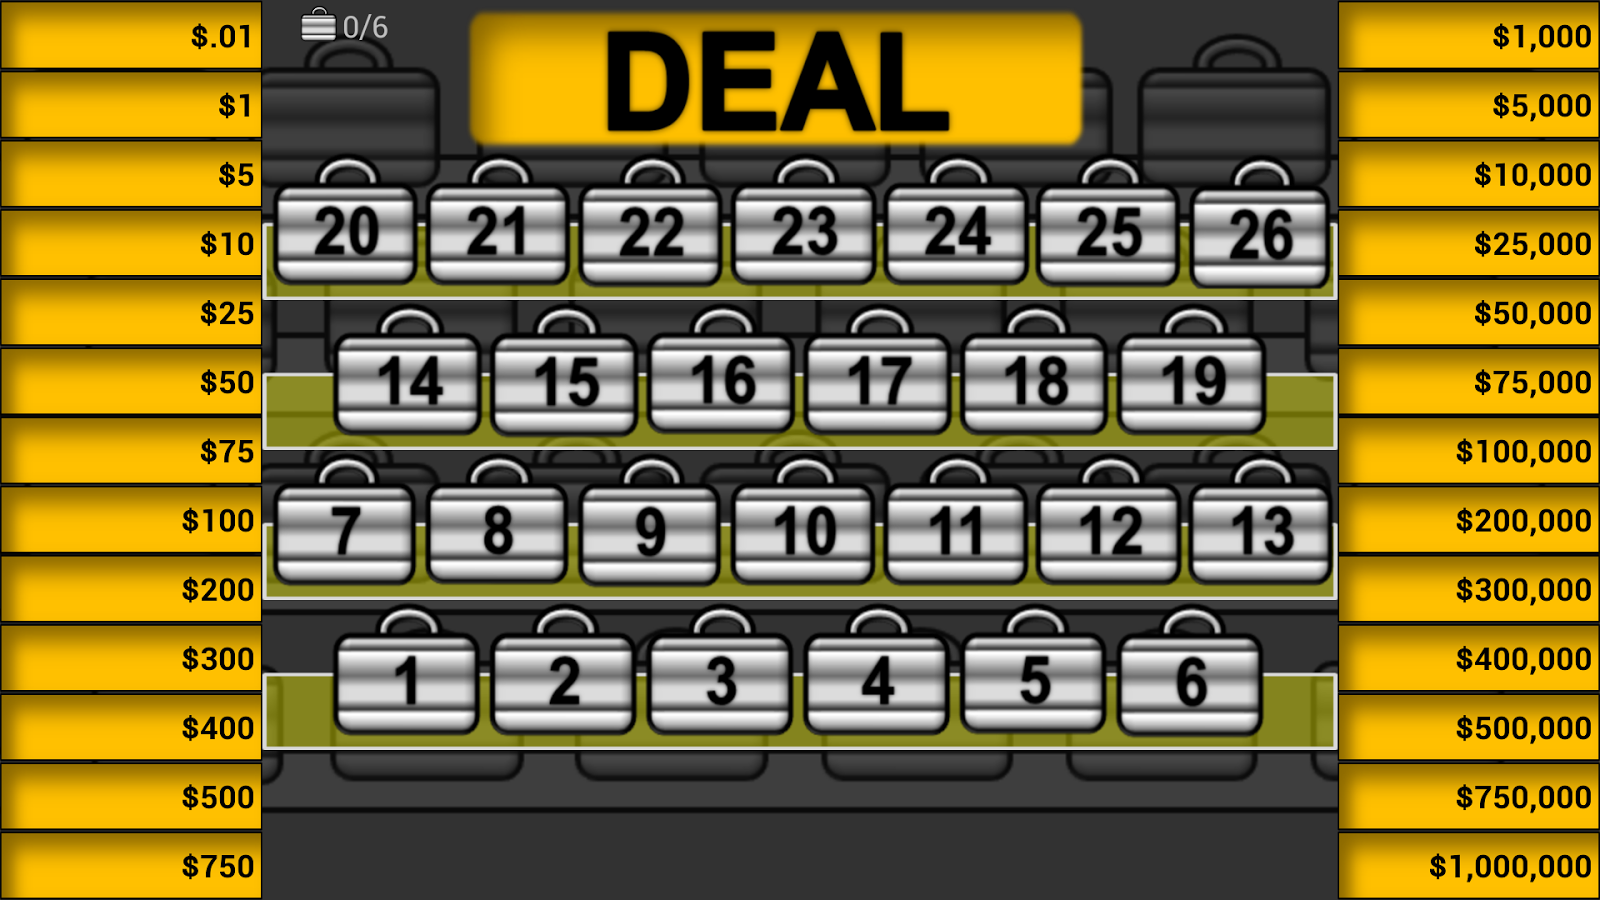 Deal - Free- screenshot